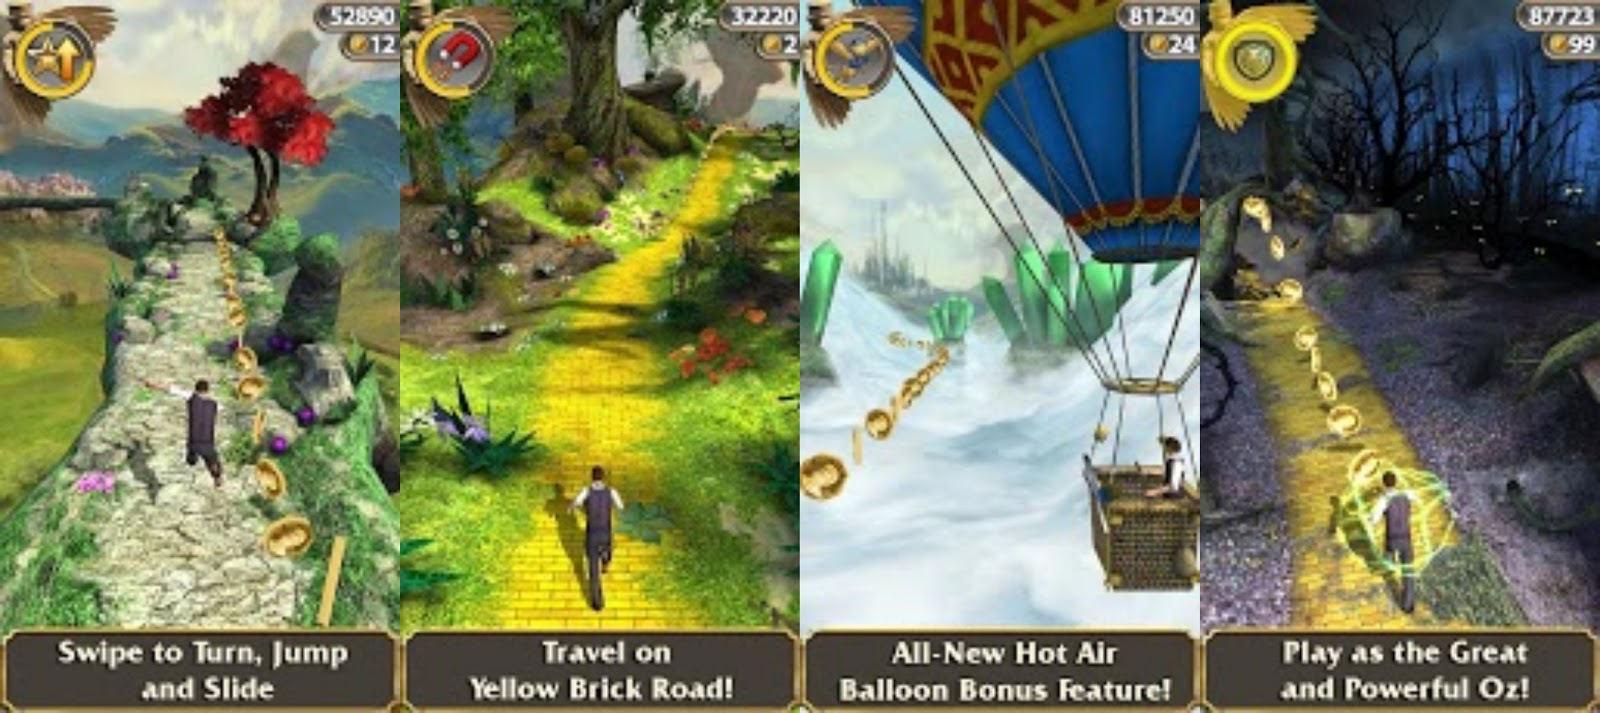 temple run oz v1 0 1 apk update temple run oz v1 0 2 apk download